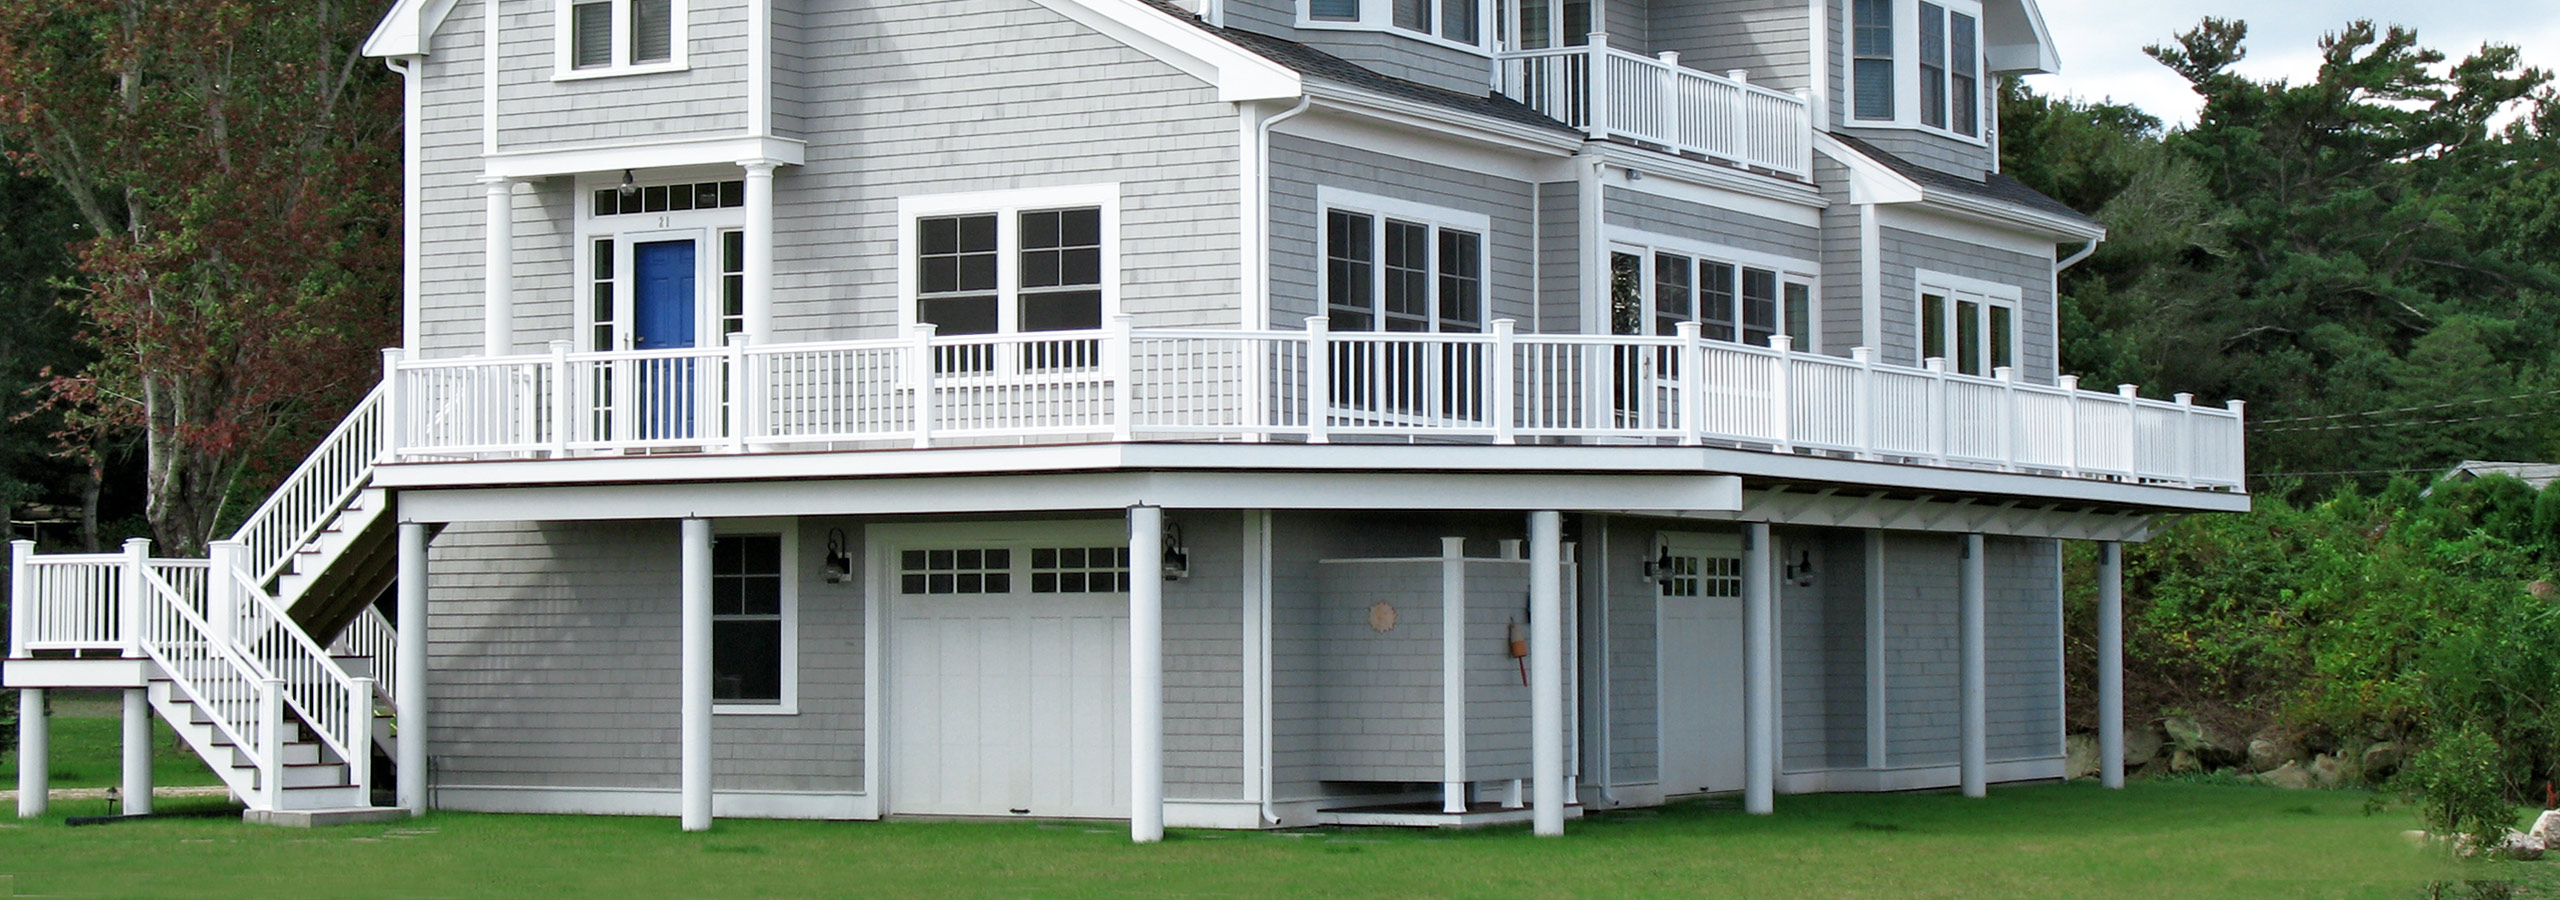 Composite Fibergl Pilings for Stilt Foundations | Pearson ... on country house plans, plain and simple house plans, modular beach house plans, stilt house plans, habitat style house plans, modern bungalow house plans, southern beach house plans, nantucket style house plans, modular a frame house plans, beach cottage house plans, slab house plans, pier pole house plans,